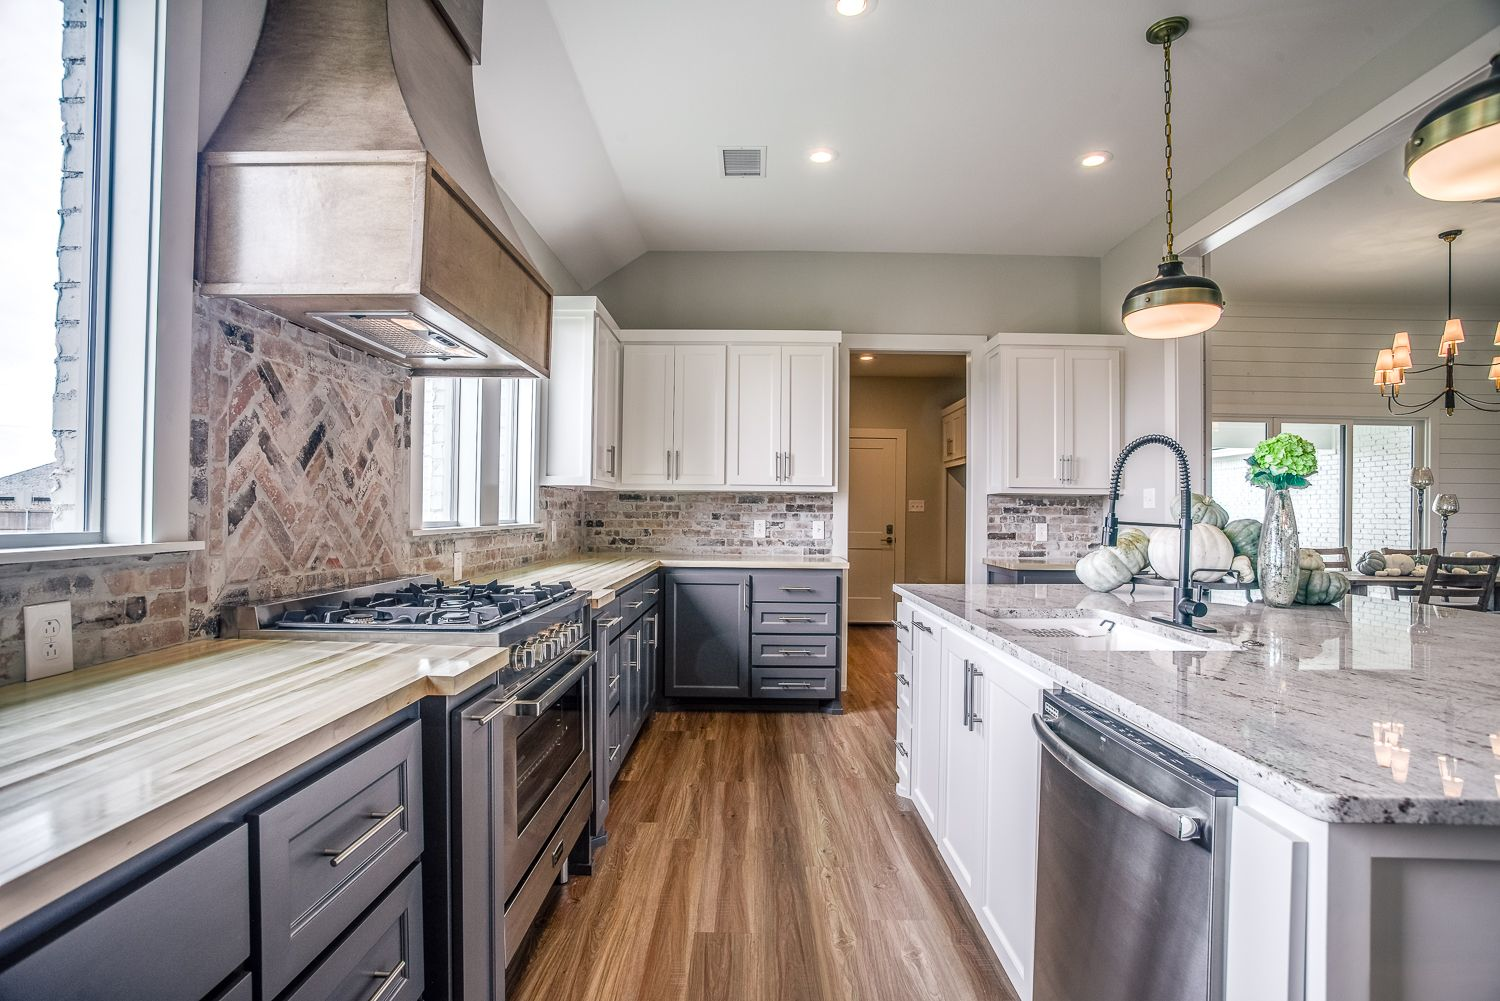 The Custom Range Hood Sits Atop A Commercial Grade Range Surrounded By Ample Cabinets This Kitchen Is As Functional Kitchen Custom Range Hood Kitchen Dining